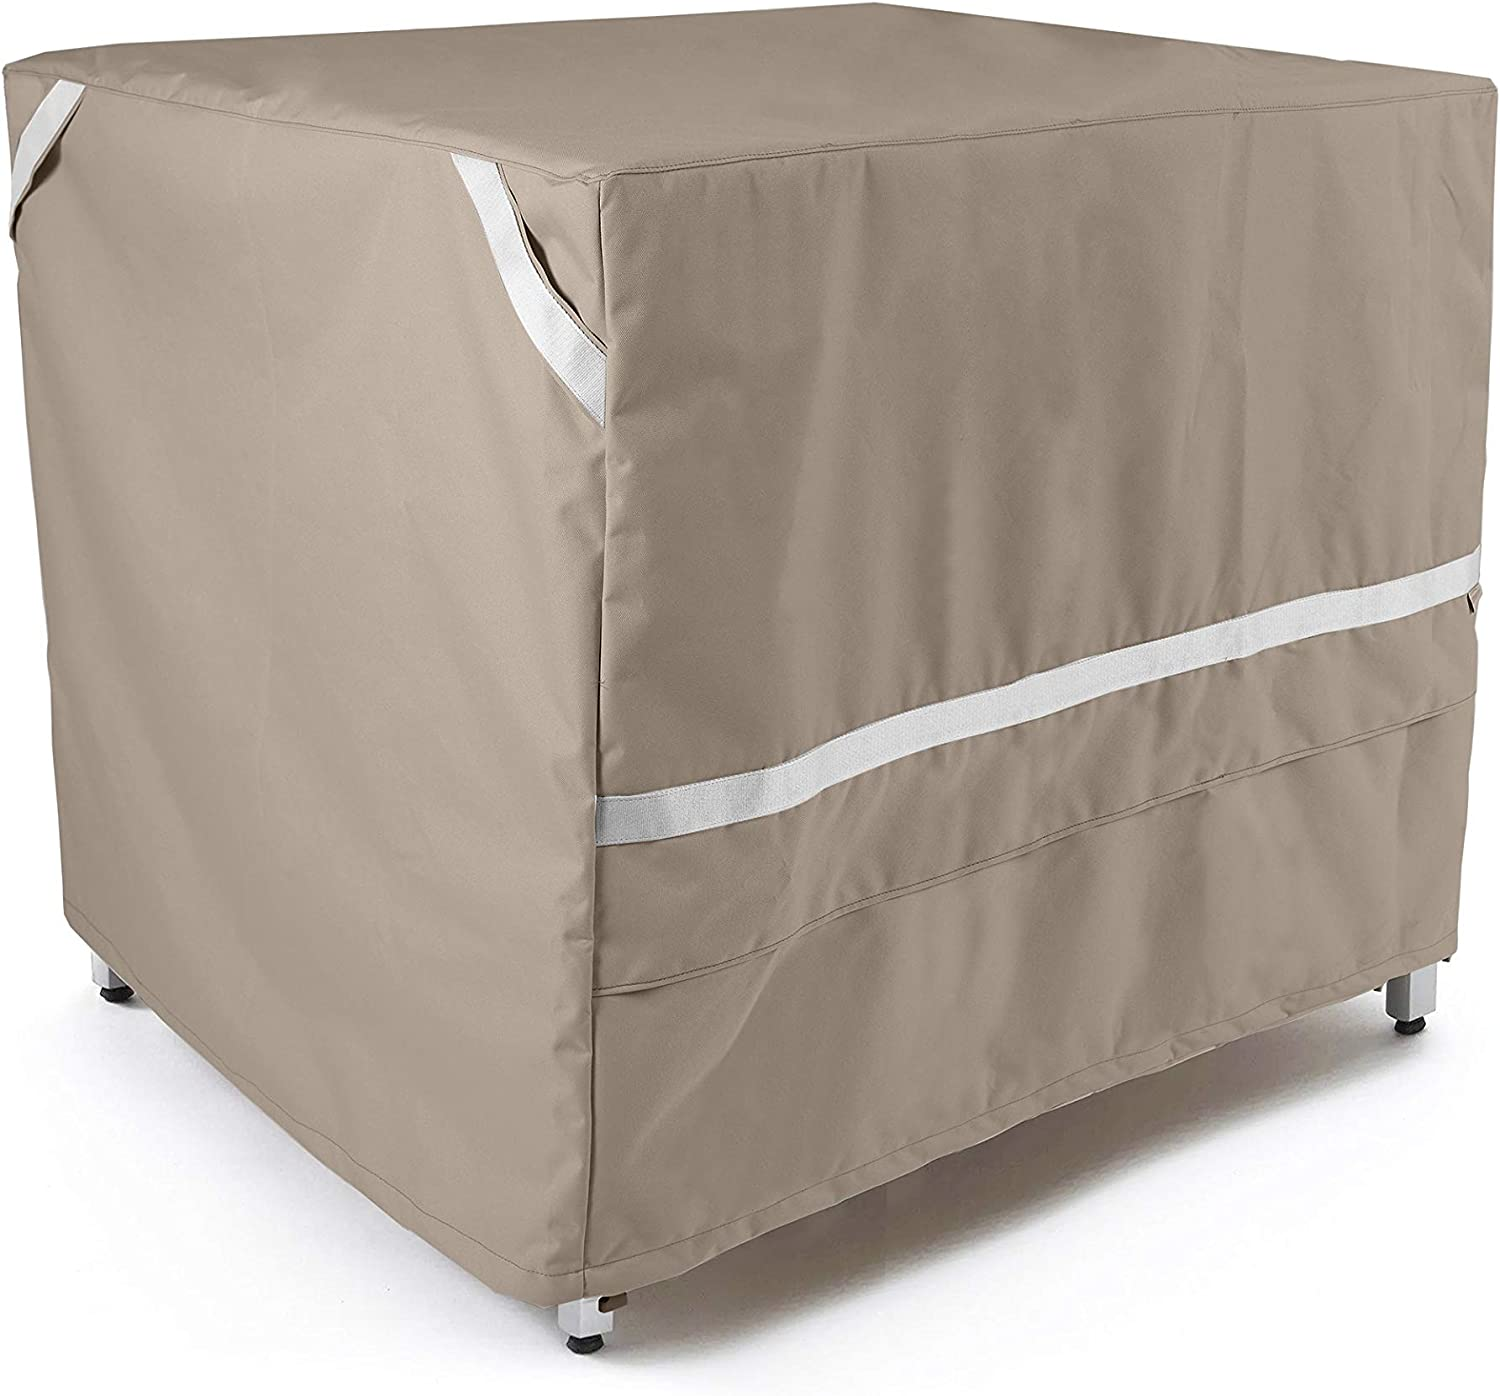 Covermates Square Dining Regular store Table Cover - SALENEW very popular! Premium Polyester Weathe